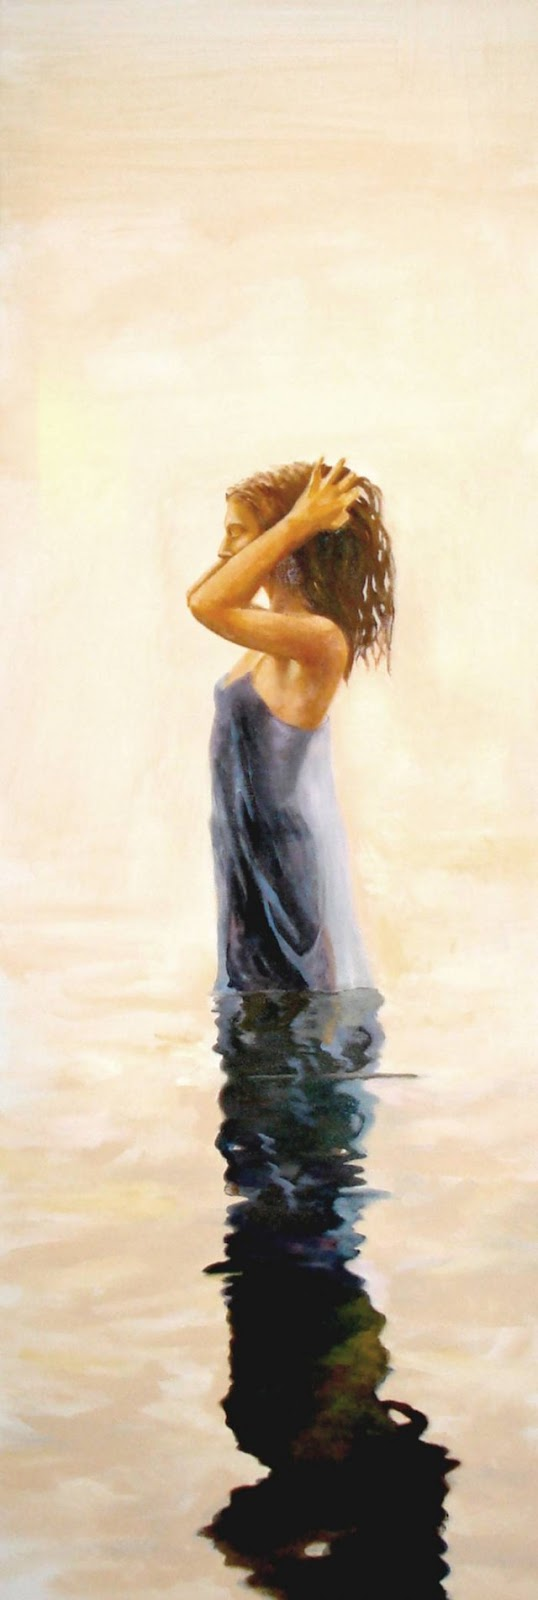 Tomás Taure Alonso 1944 | Spanish Figurative painter | Moments